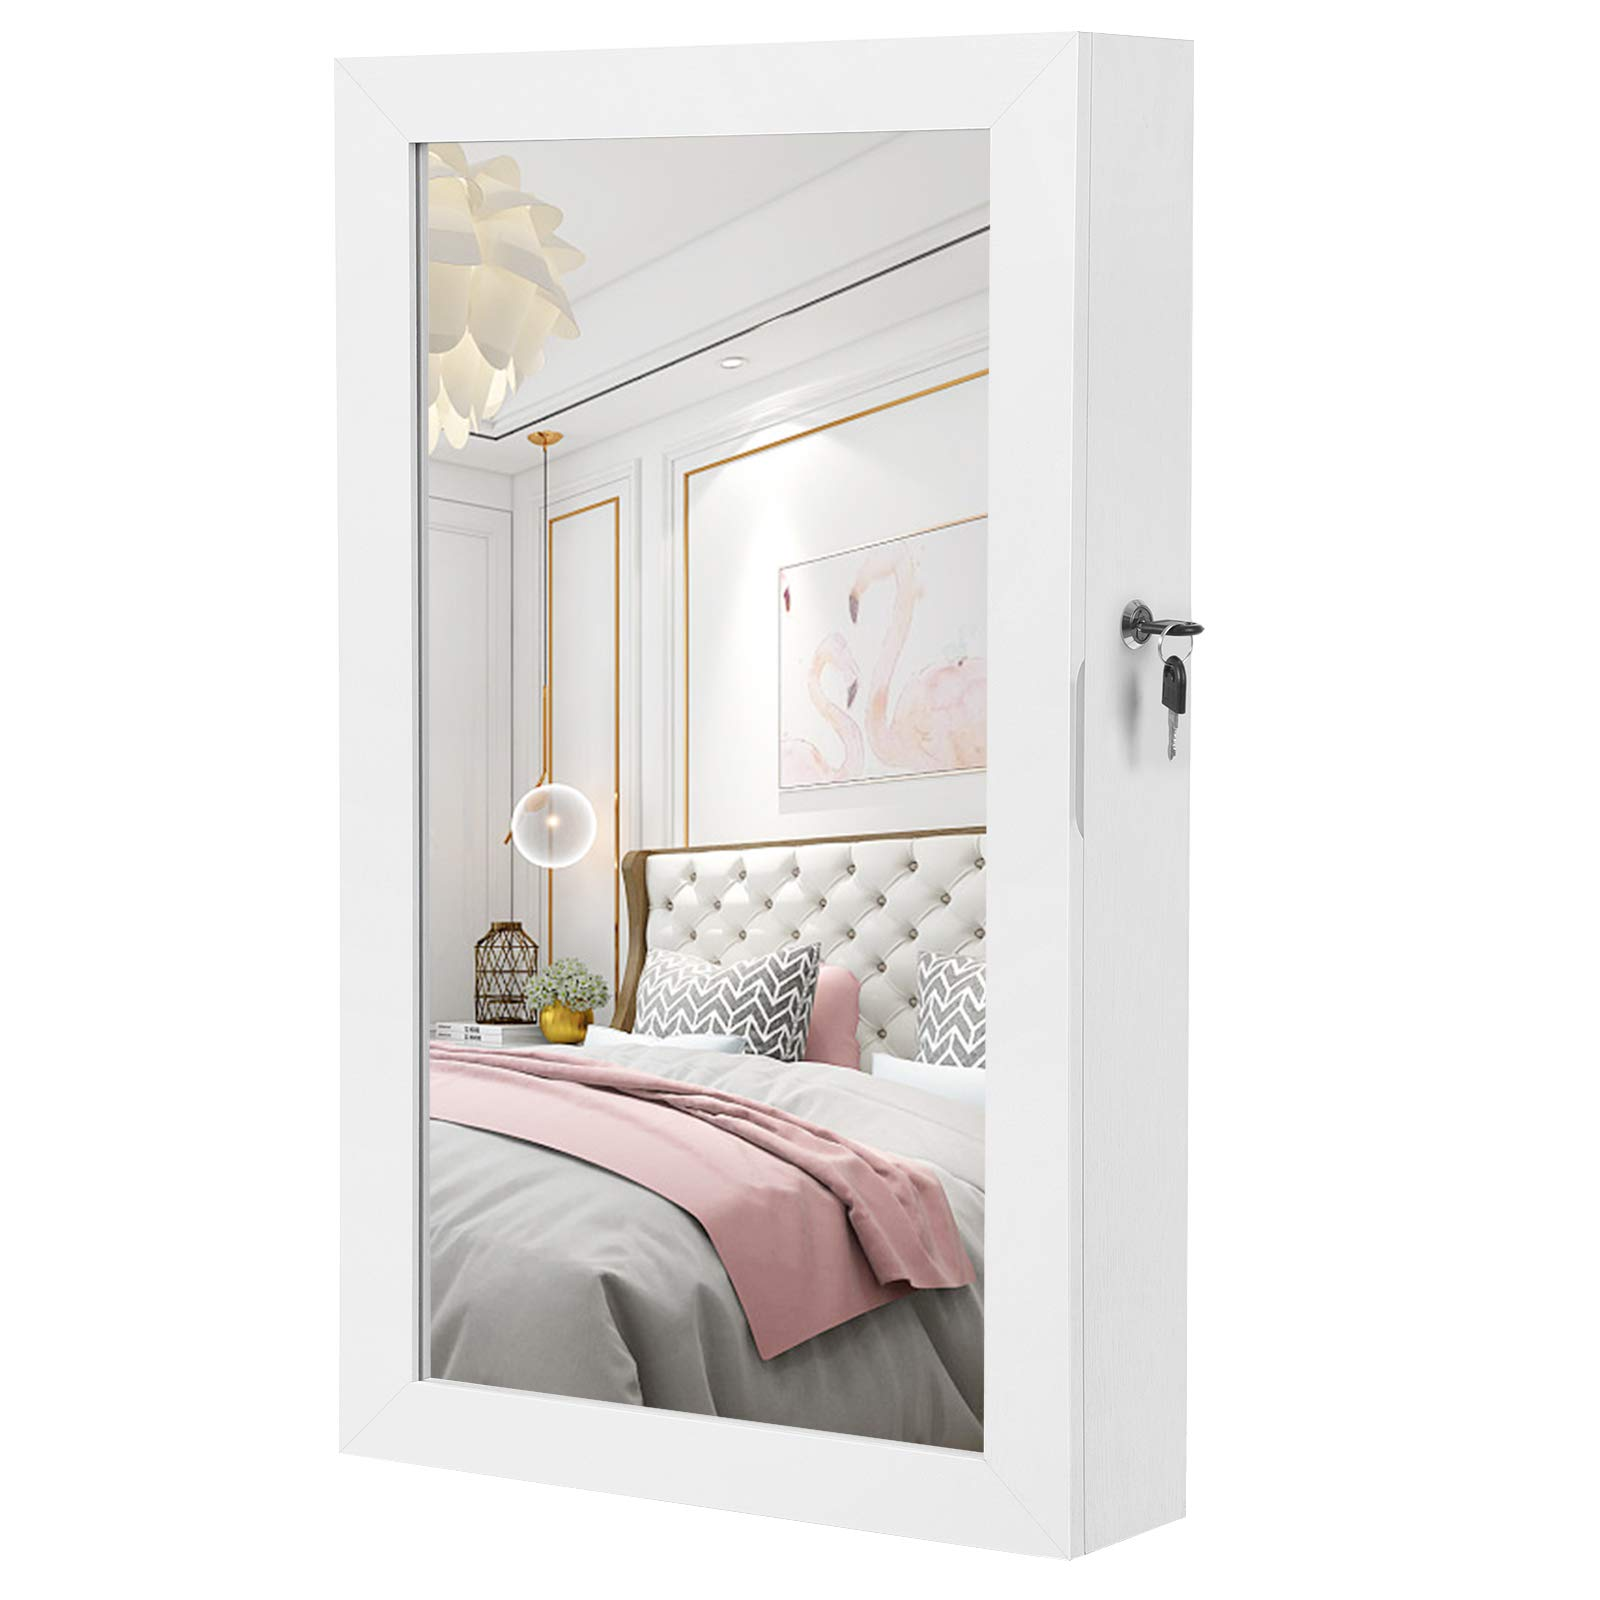 SONGMICS Lockable Jewelry Cabinet Armoire with Mirror, Wall-Mounted Space Saving Jewelry Storage Organizer White UJJC51WT